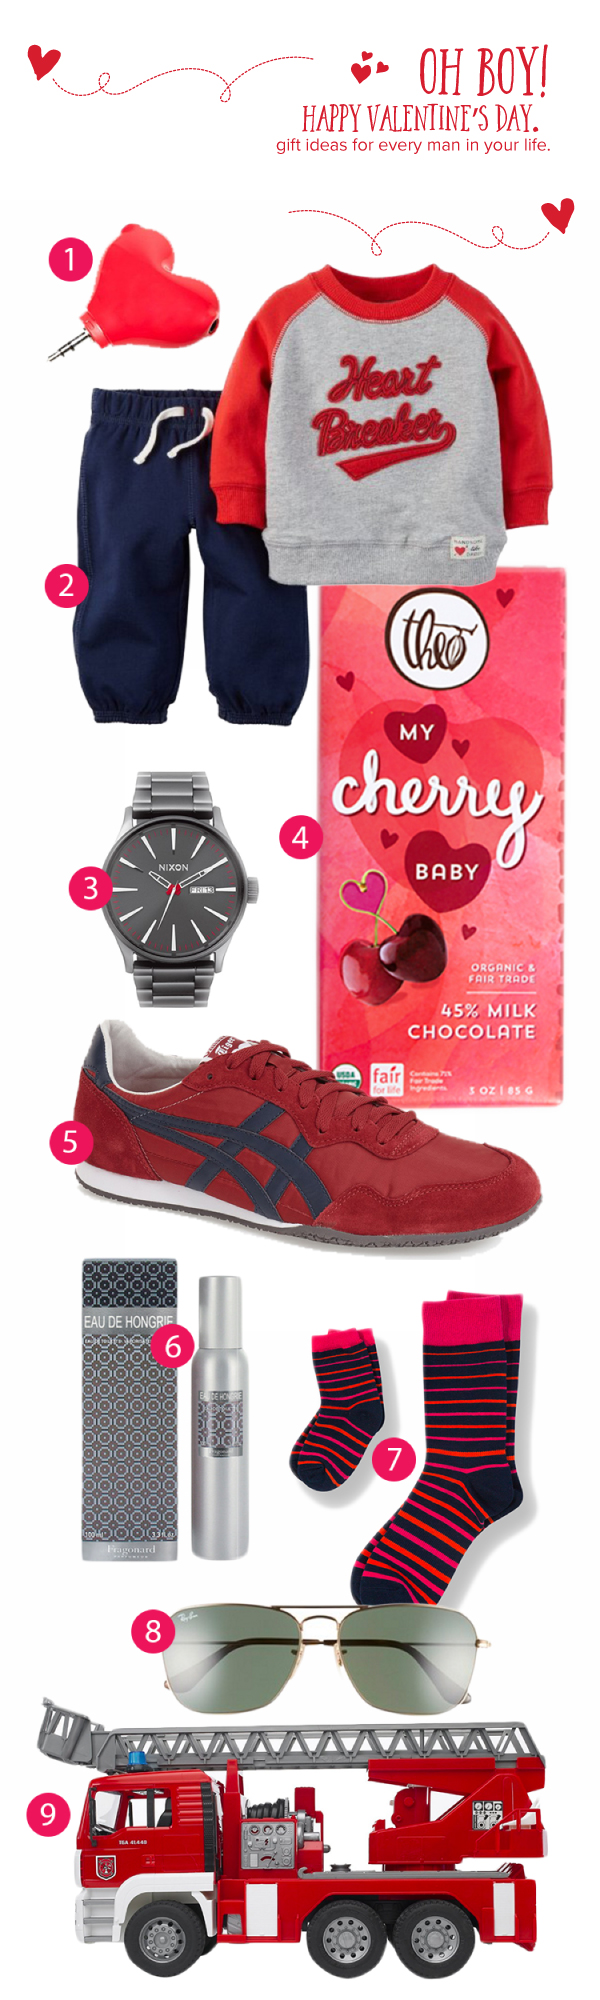 "1 -  Heart Shaped Headphone Splitter , 2 -  Carter's Valentine's Day Pullover & Pant Set  , 3 -  Nixon Watch , 4 -  Theo Chocolate ""My Cherry Chocolate Bar"" , 5 -  Onitsuka Tiger Serrano Sneaker , 6 -  Fragonard   Eau de Hongrie Cologne , 7 -  Pair of Thieves Dad + Kids Socks Pops Mike , 8 -  Ray Ban® Caravan 58mm Aviators , 9 -  Bruder MAN Fire Engine"